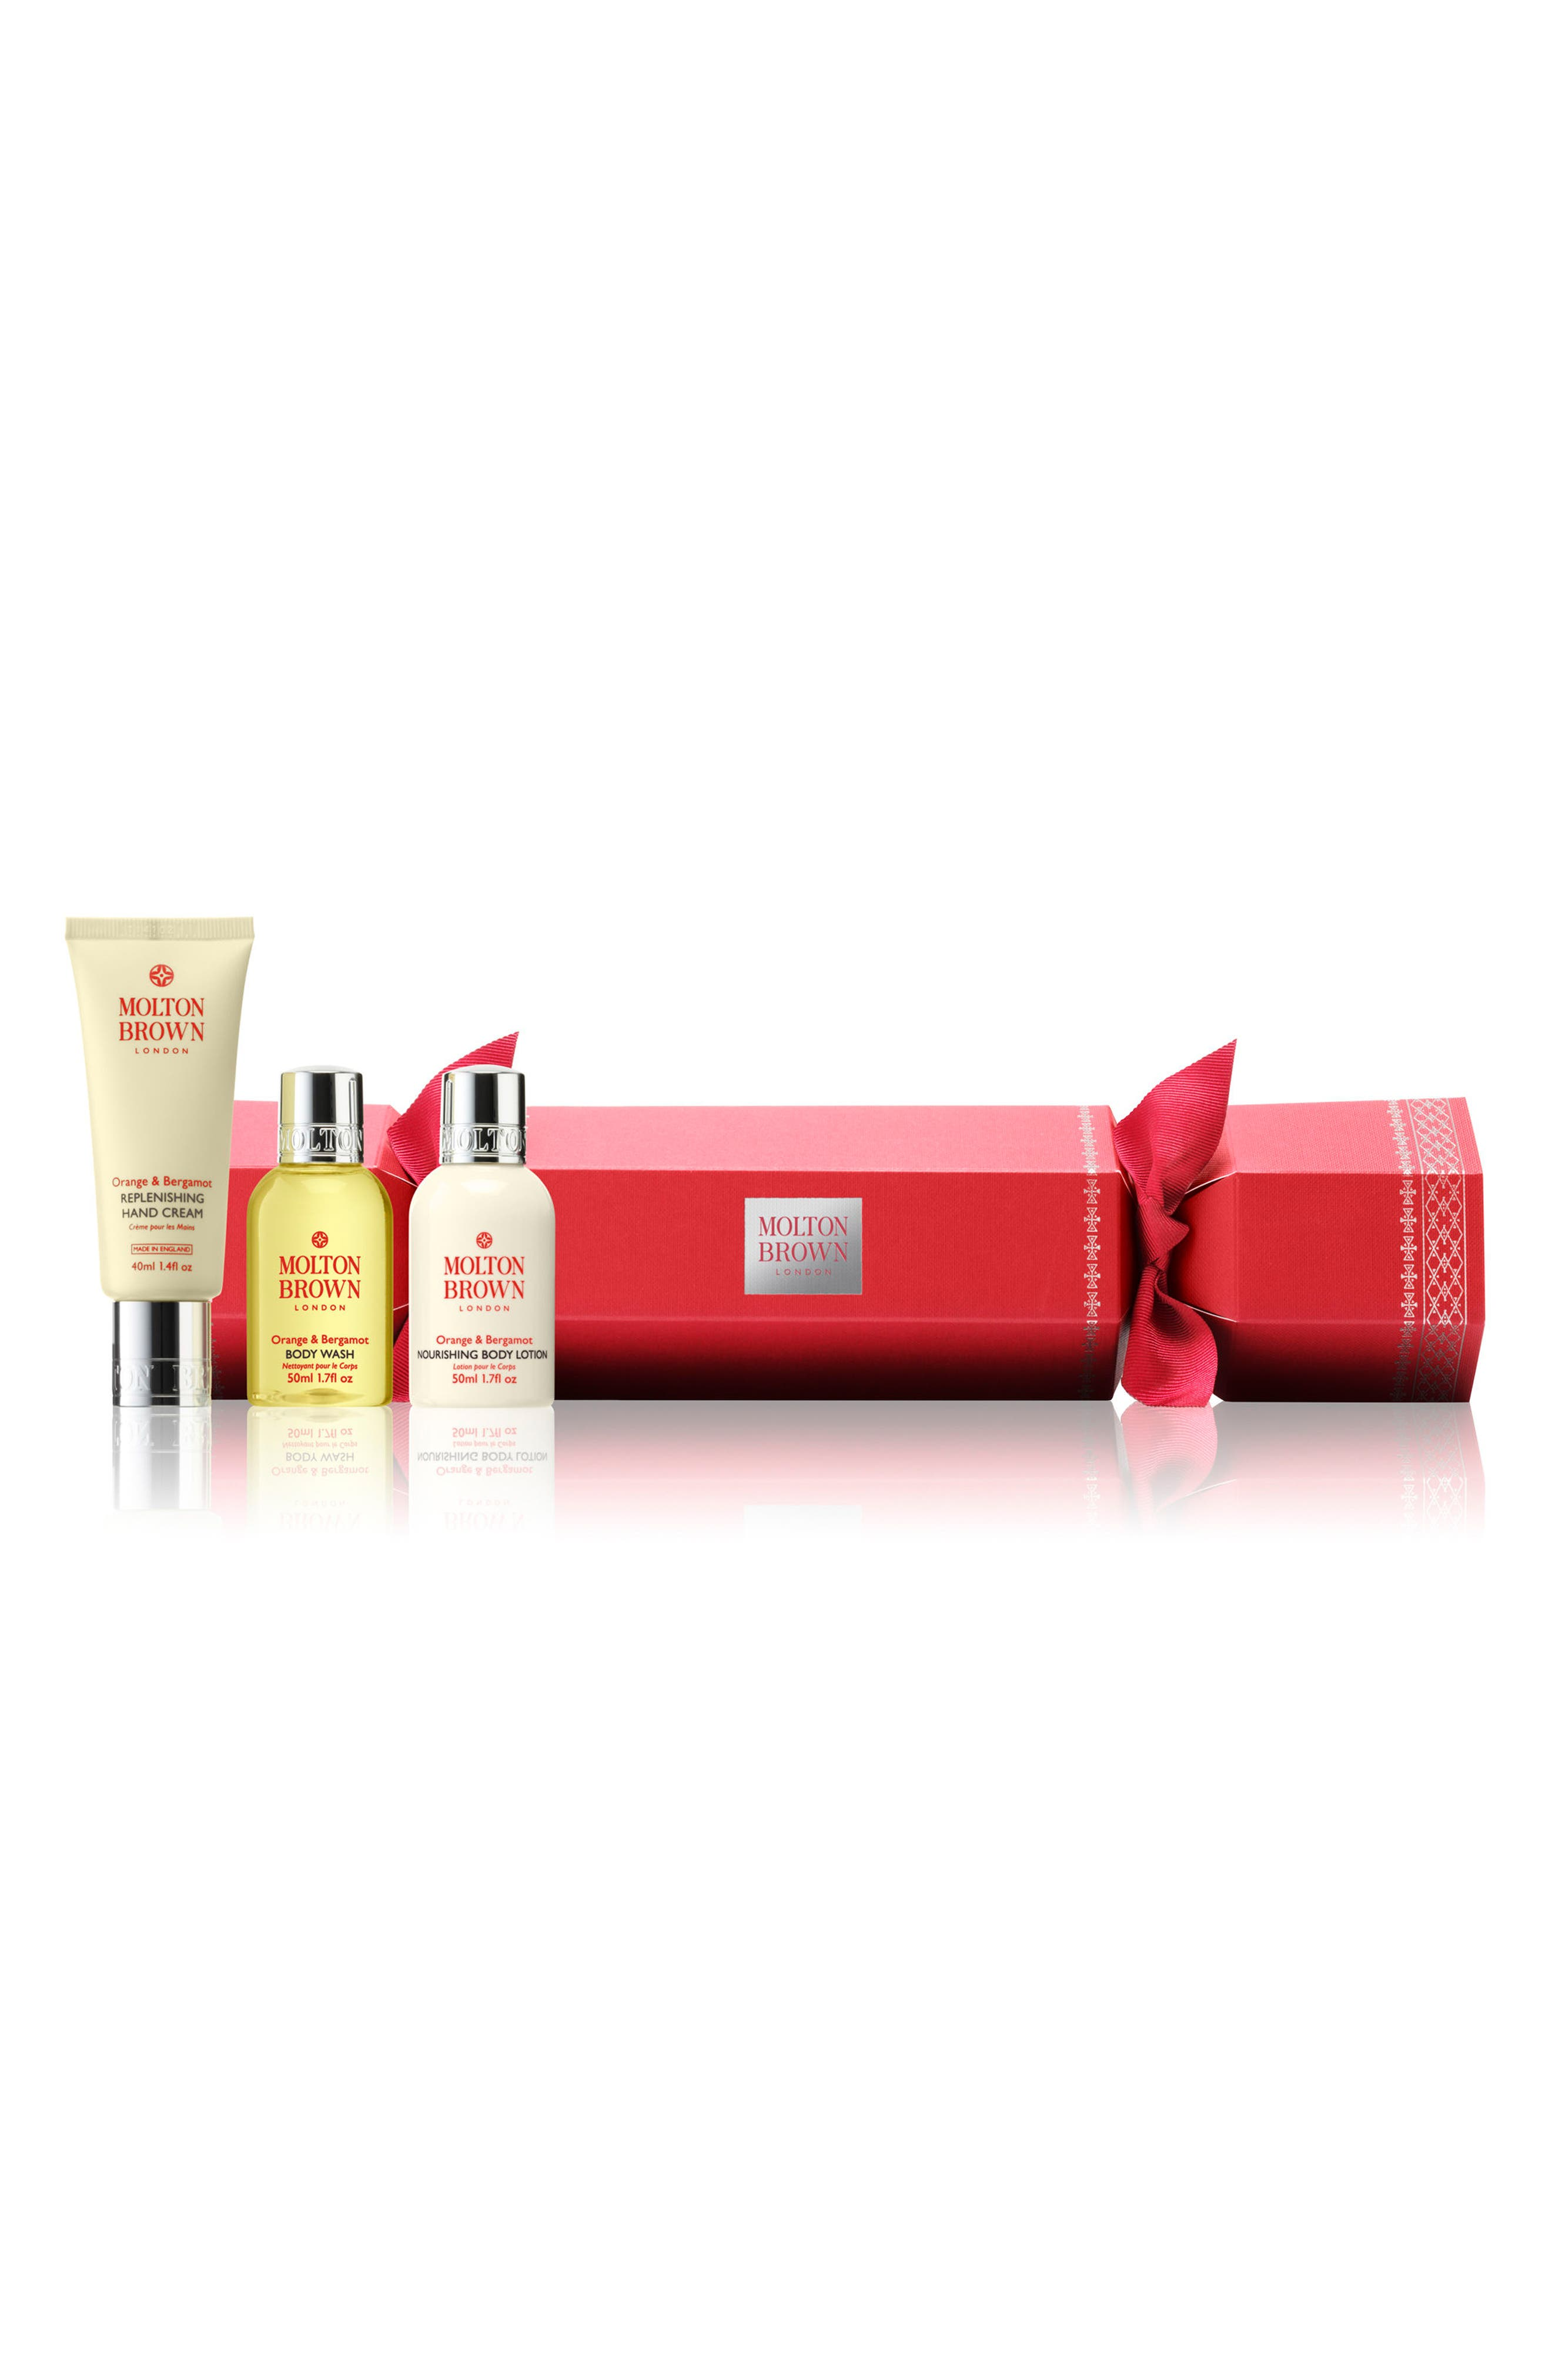 Alternate Image 1 Selected - MOLTON BROWN London Orange & Bergamot Collection (Nordstrom Exclusive) ($29 Value)